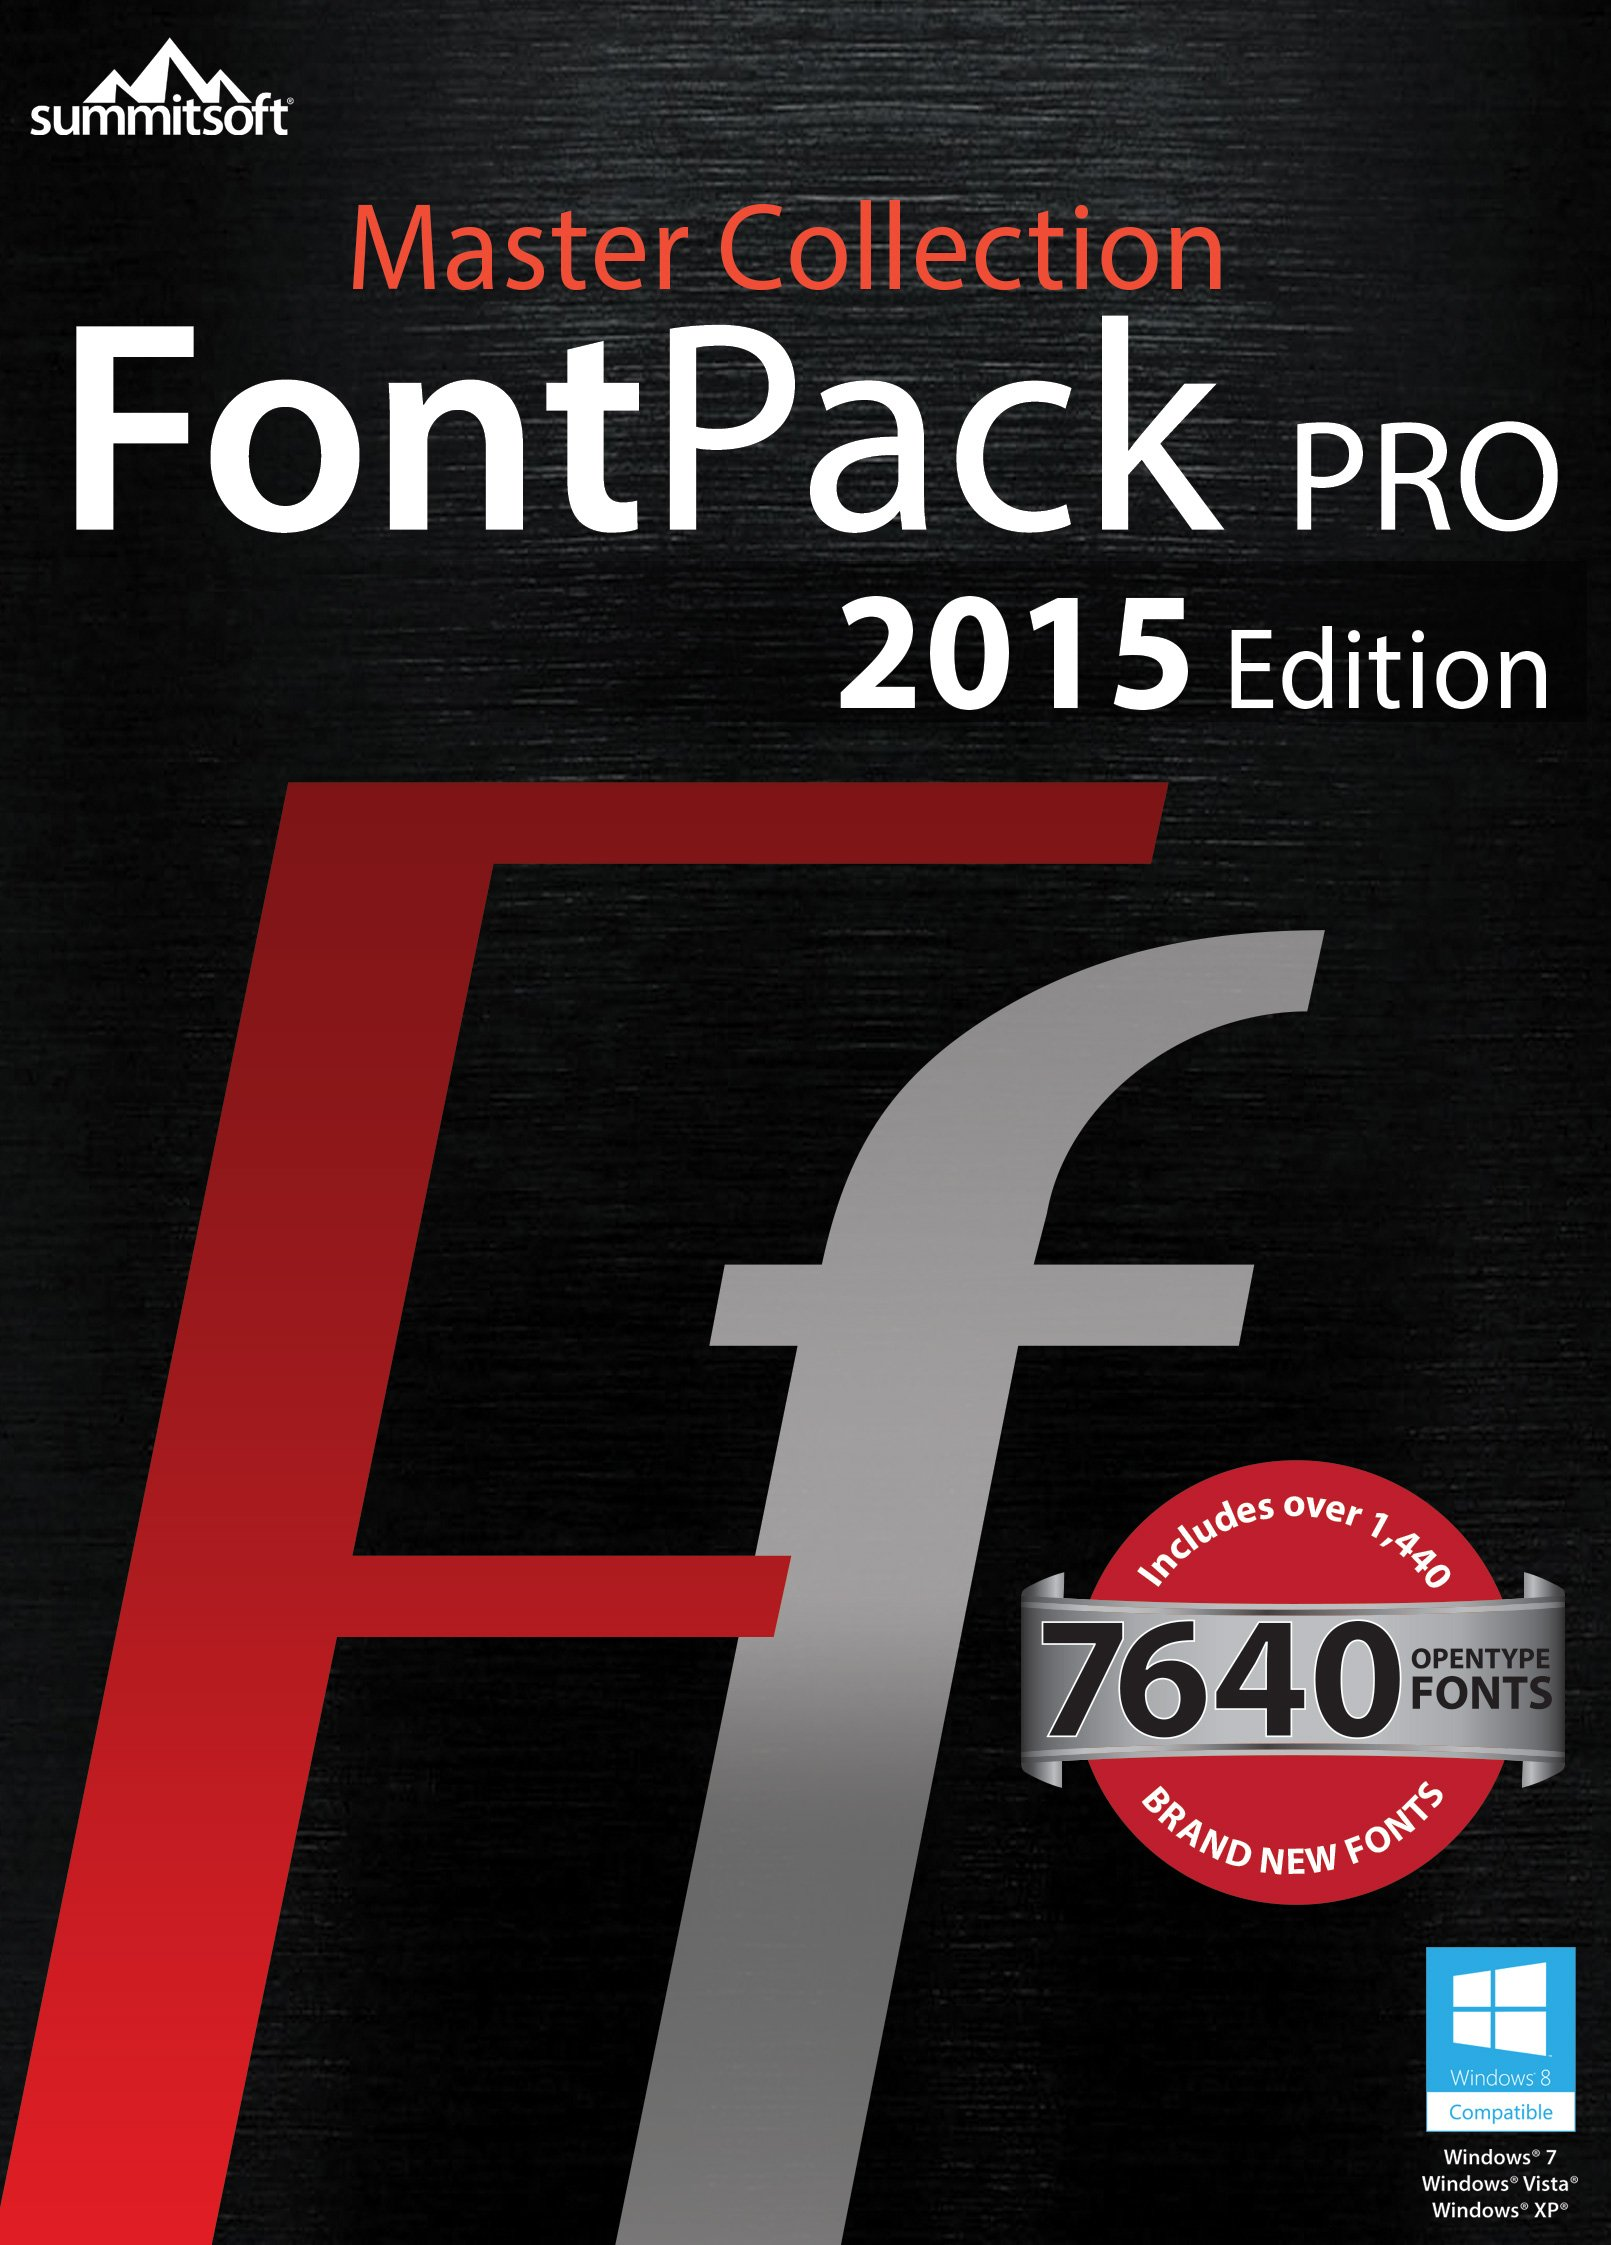 Font Pack Pro Master Collection PC [Download] by Summitsoft